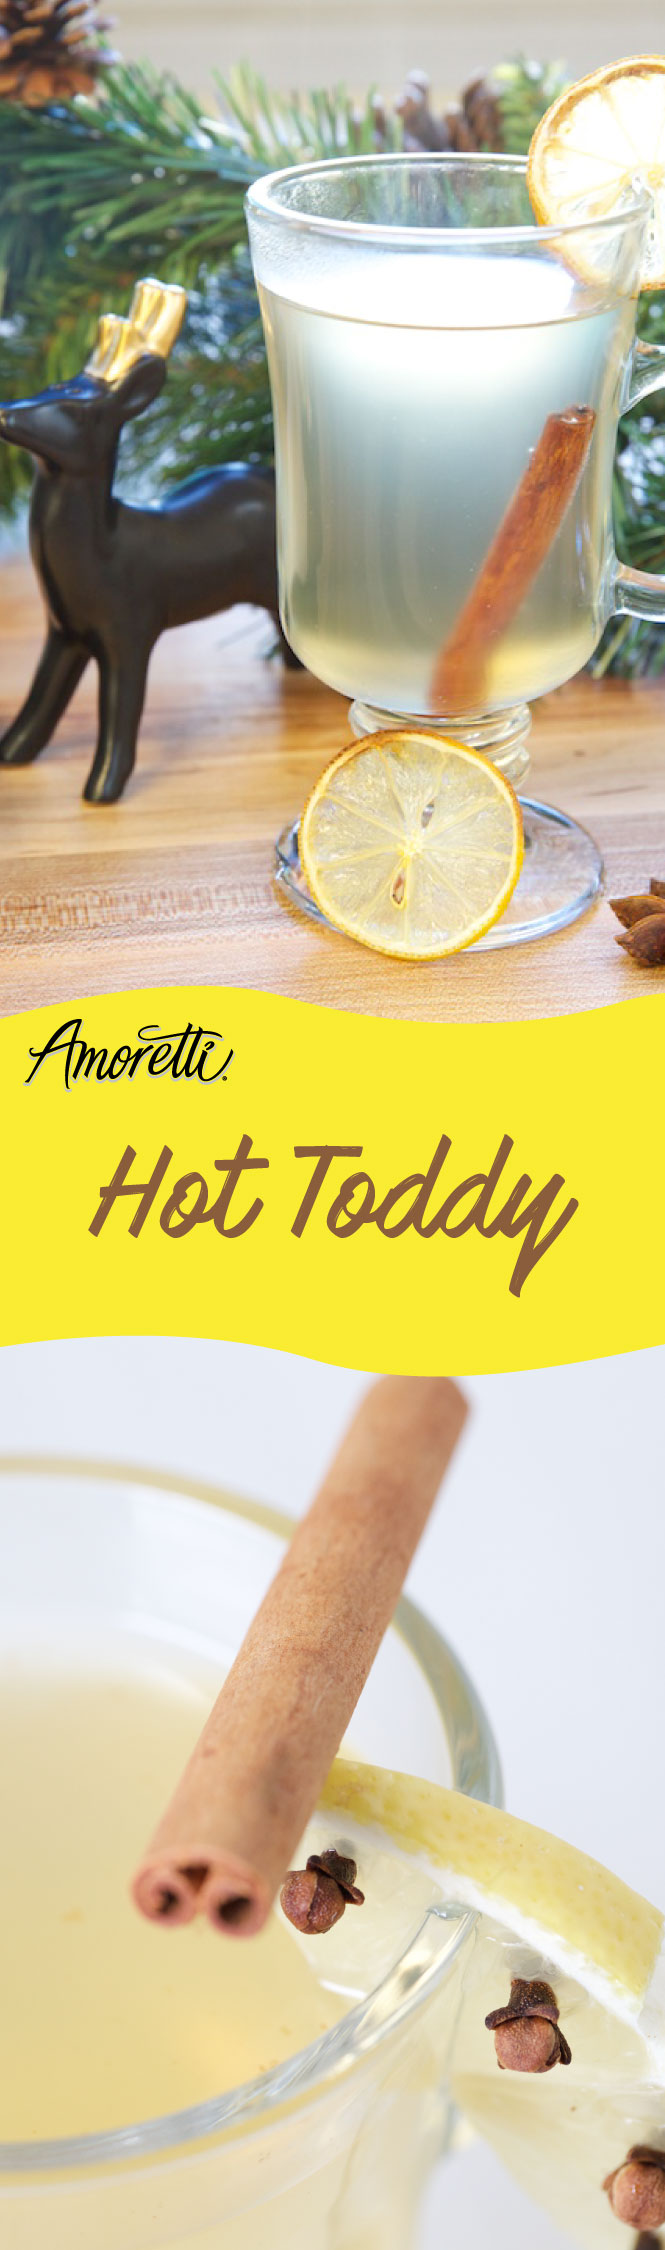 Warm yourself from the inside out with our Hot Toddy!